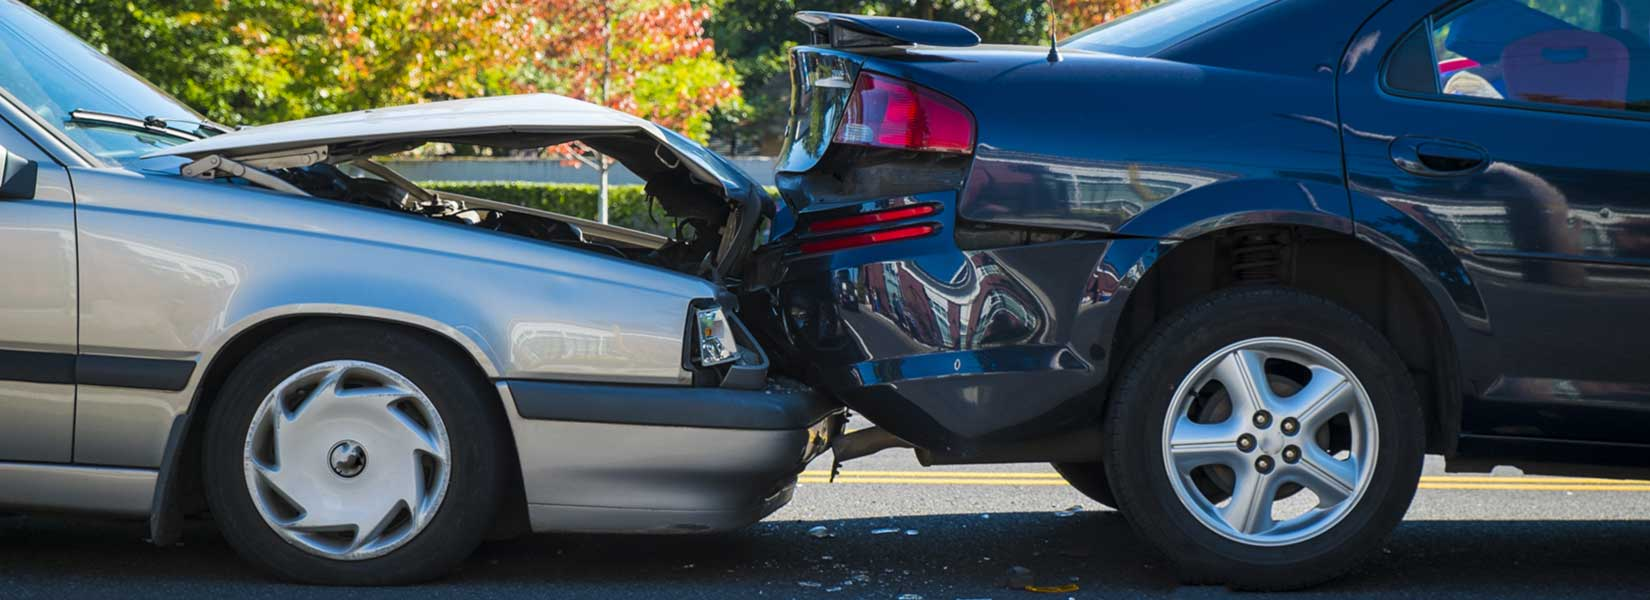 What if the Insurance Company Denies My Claim? | Auto Accident Lawyer